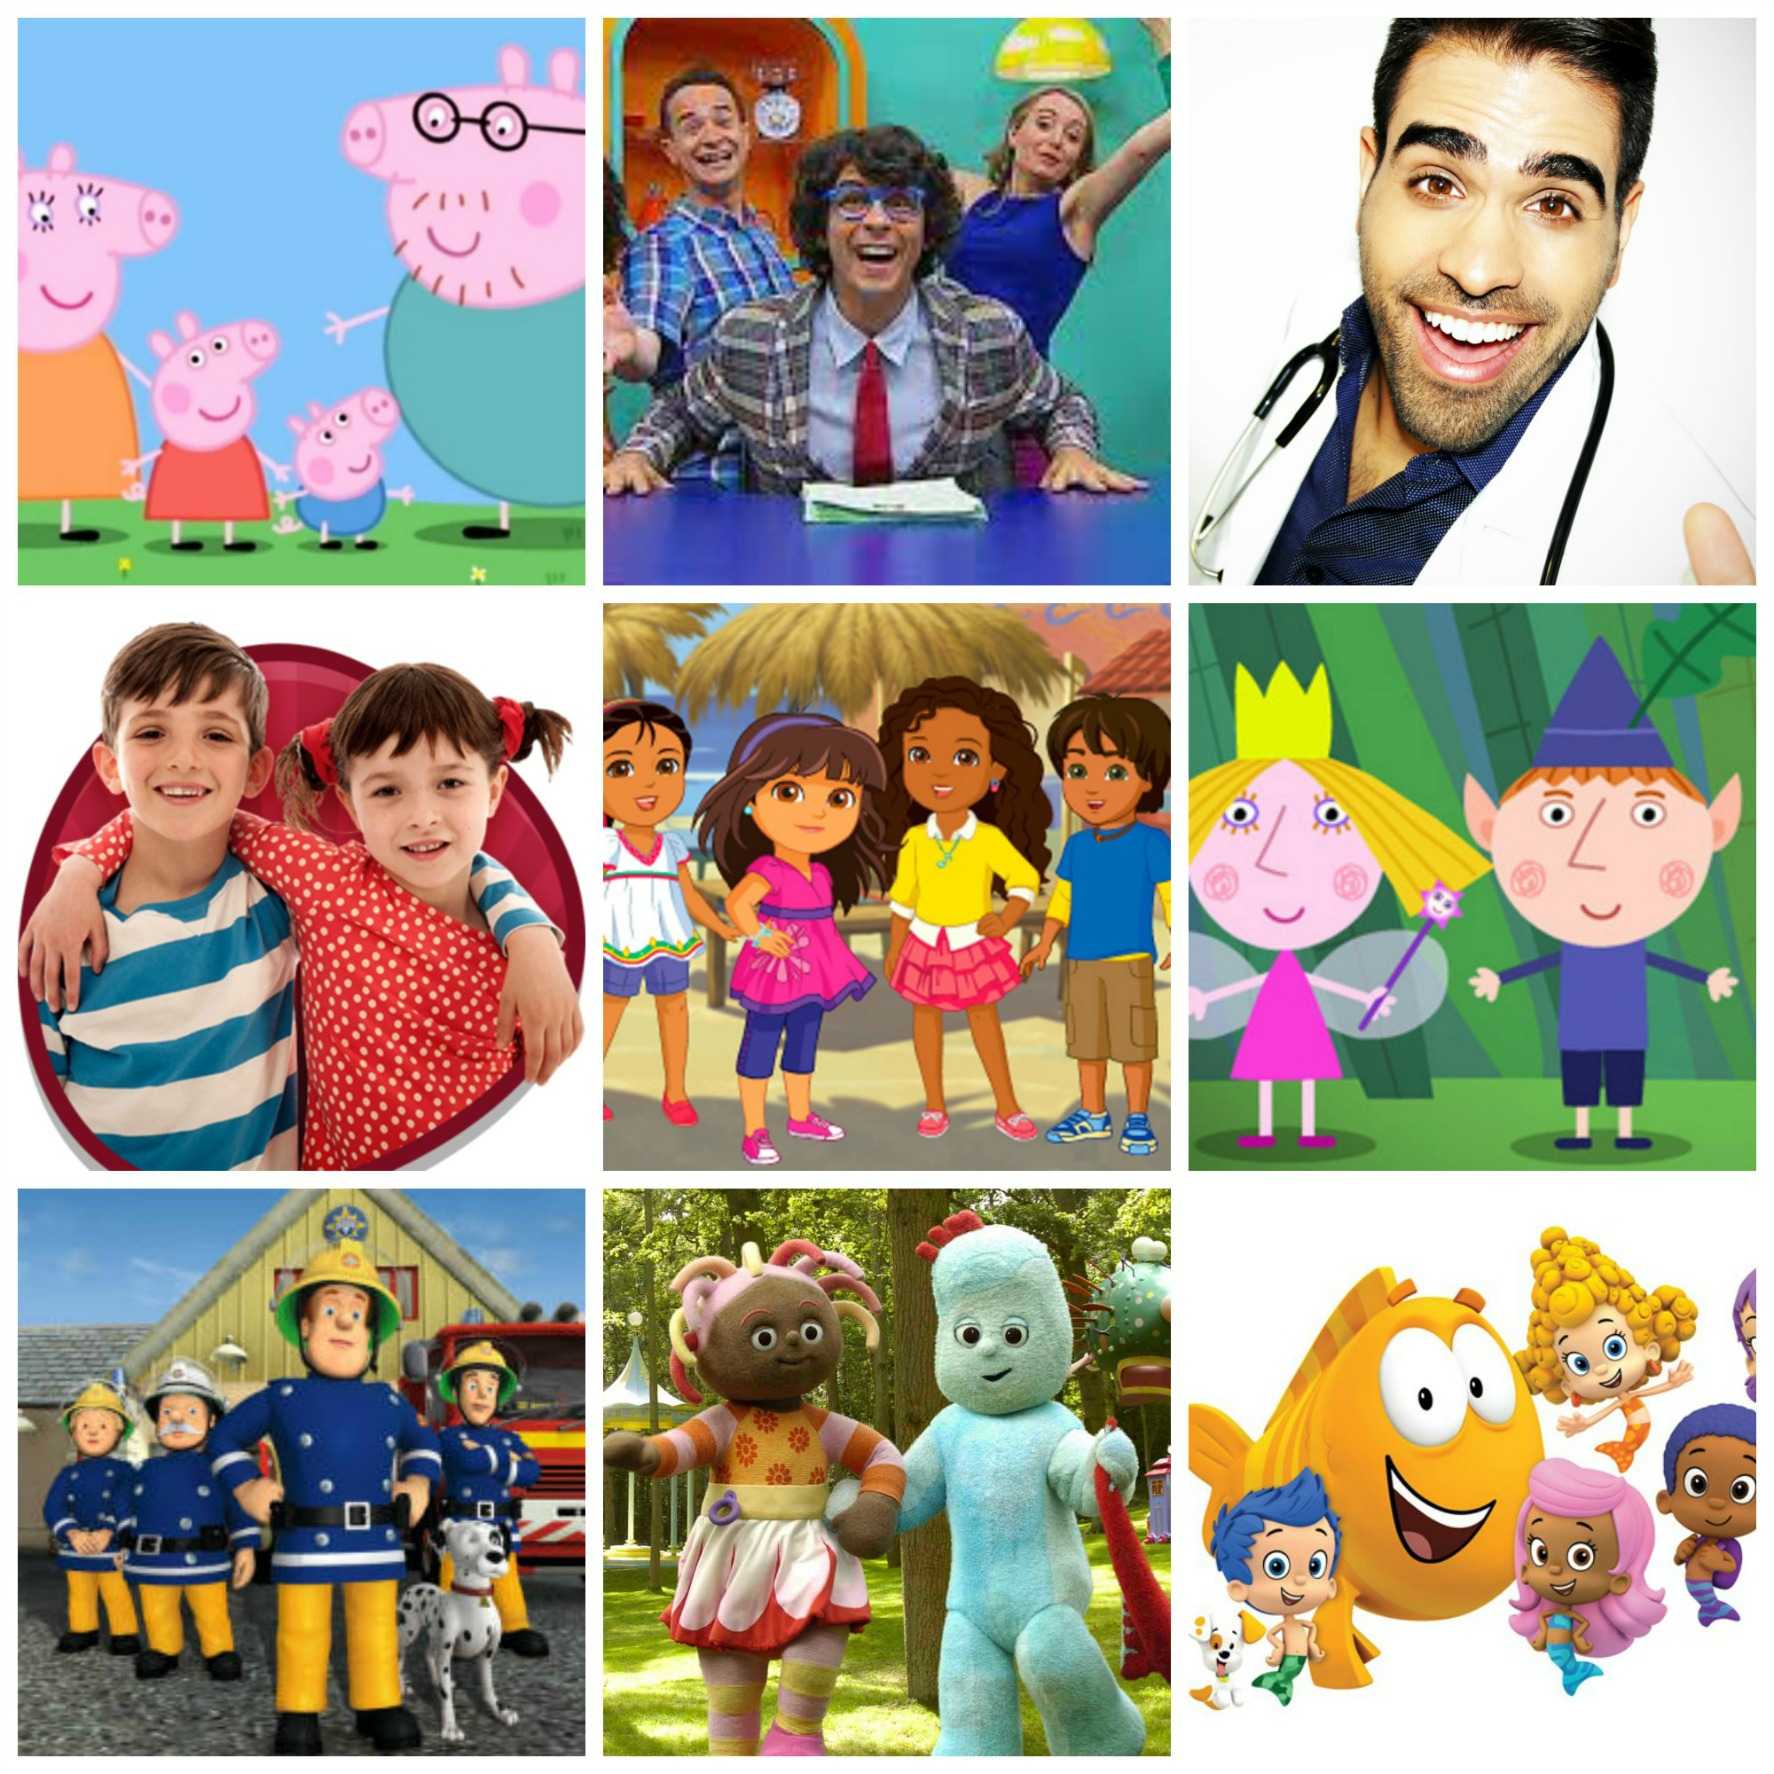 Children's TV montage